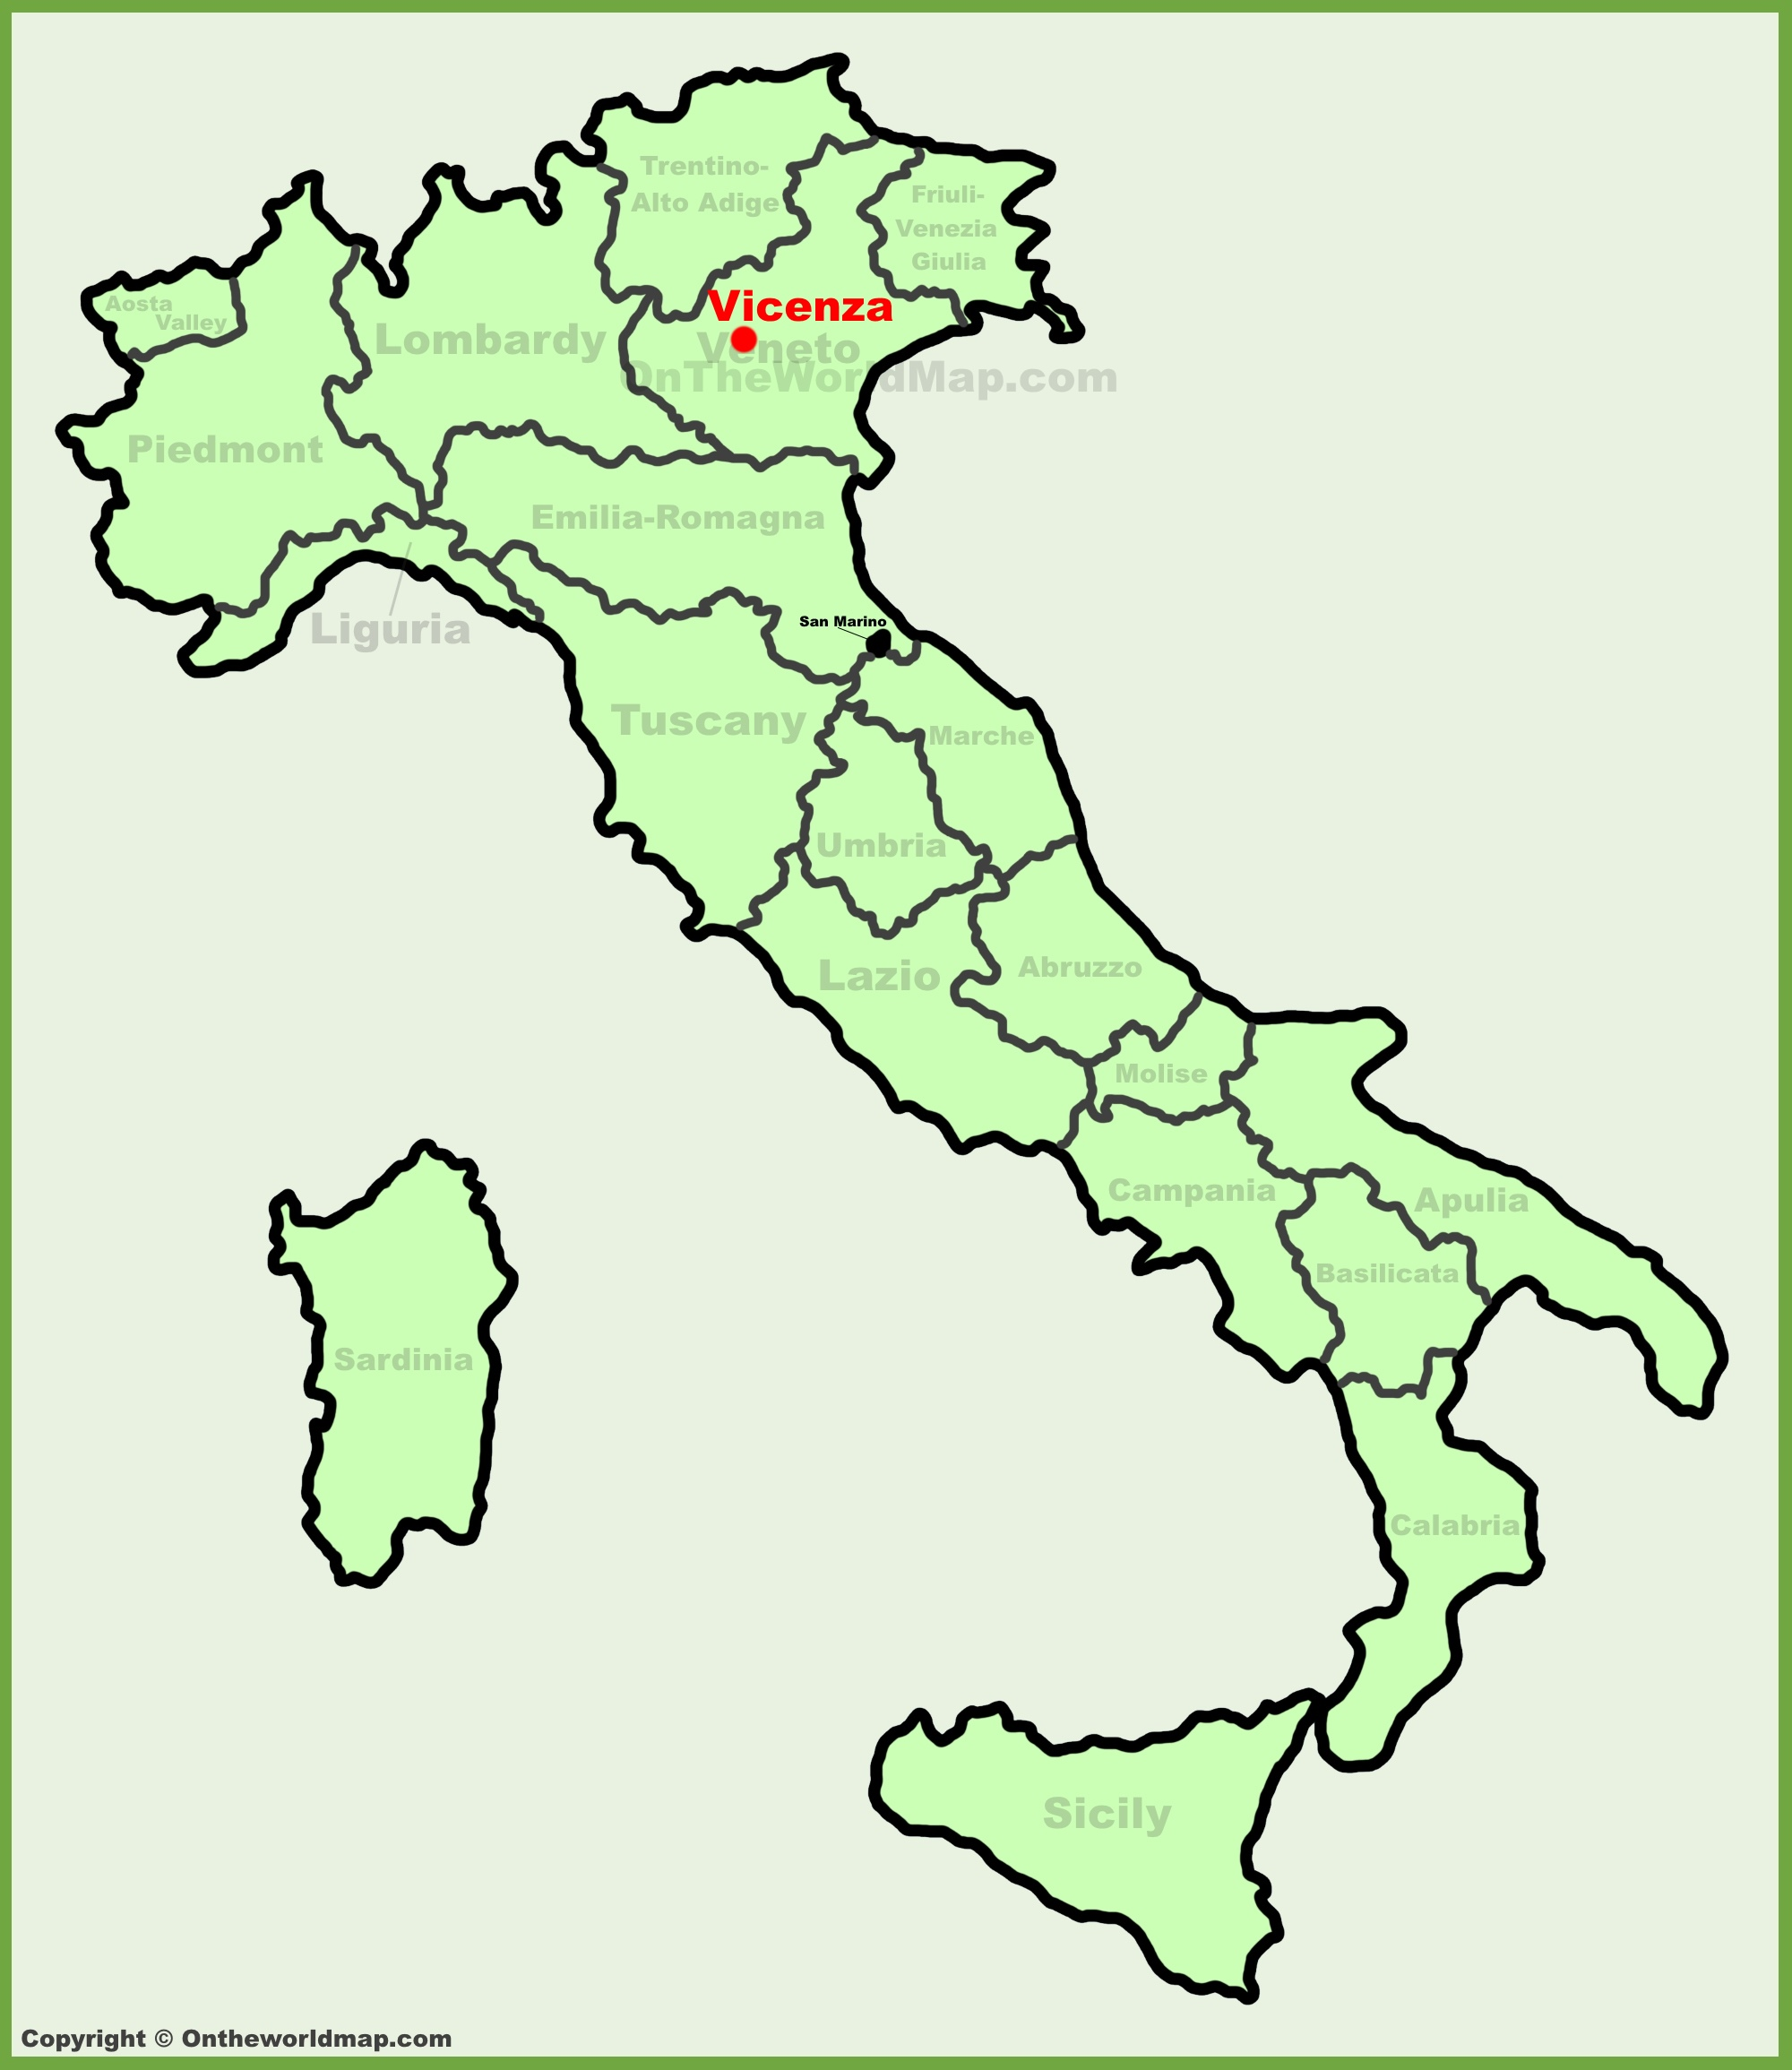 Vicenza location on the Italy map